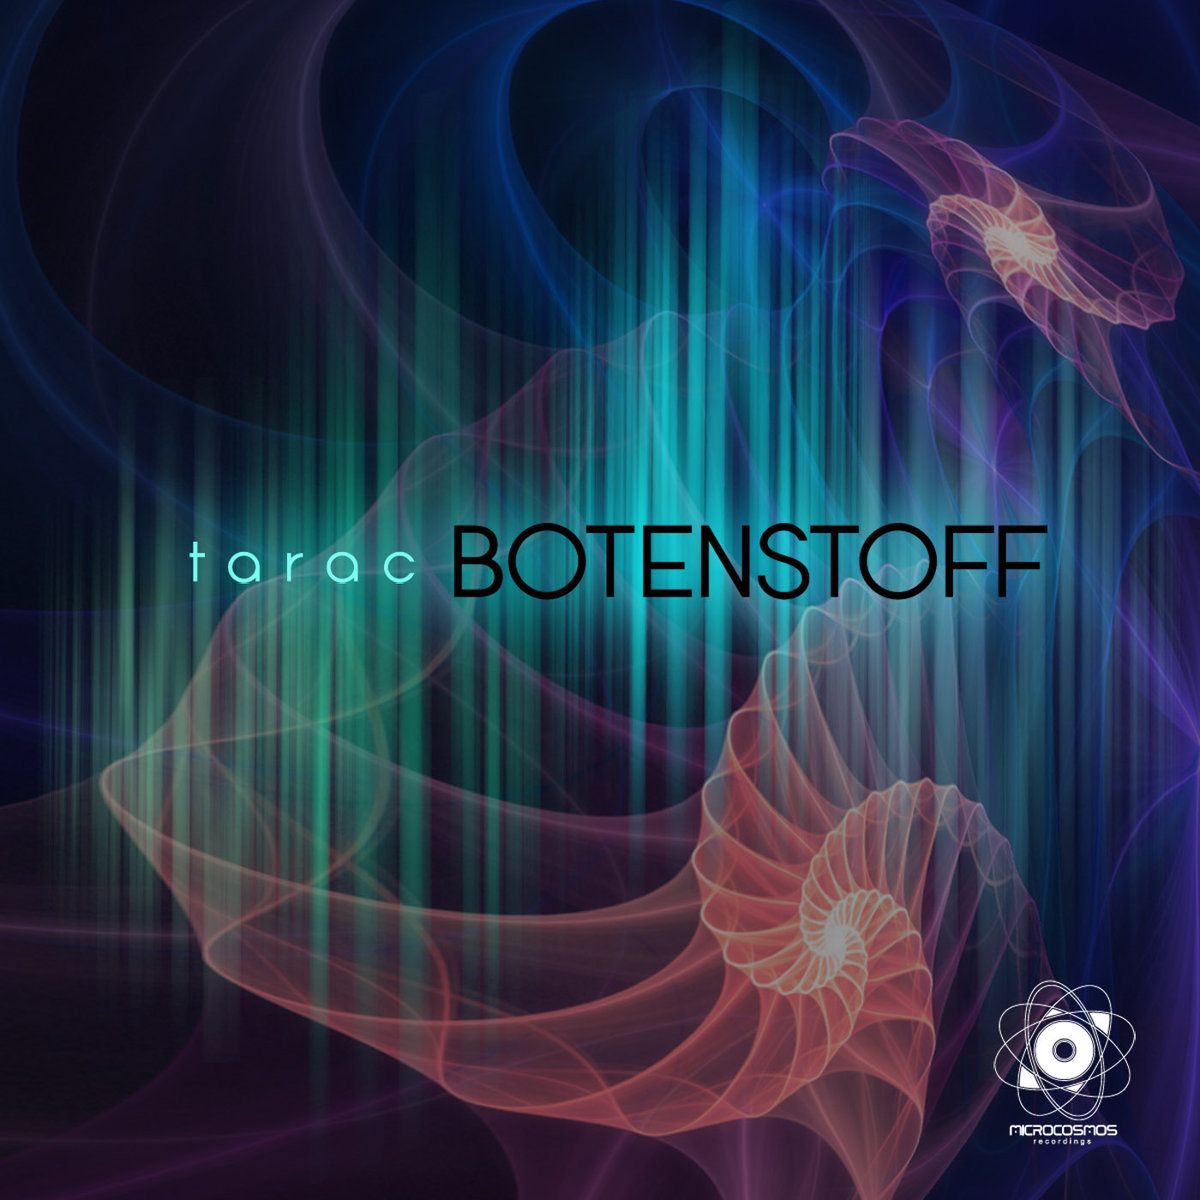 Tarac - 5 A.M. @ 'Botenstoff' album (ambient, chill-out)